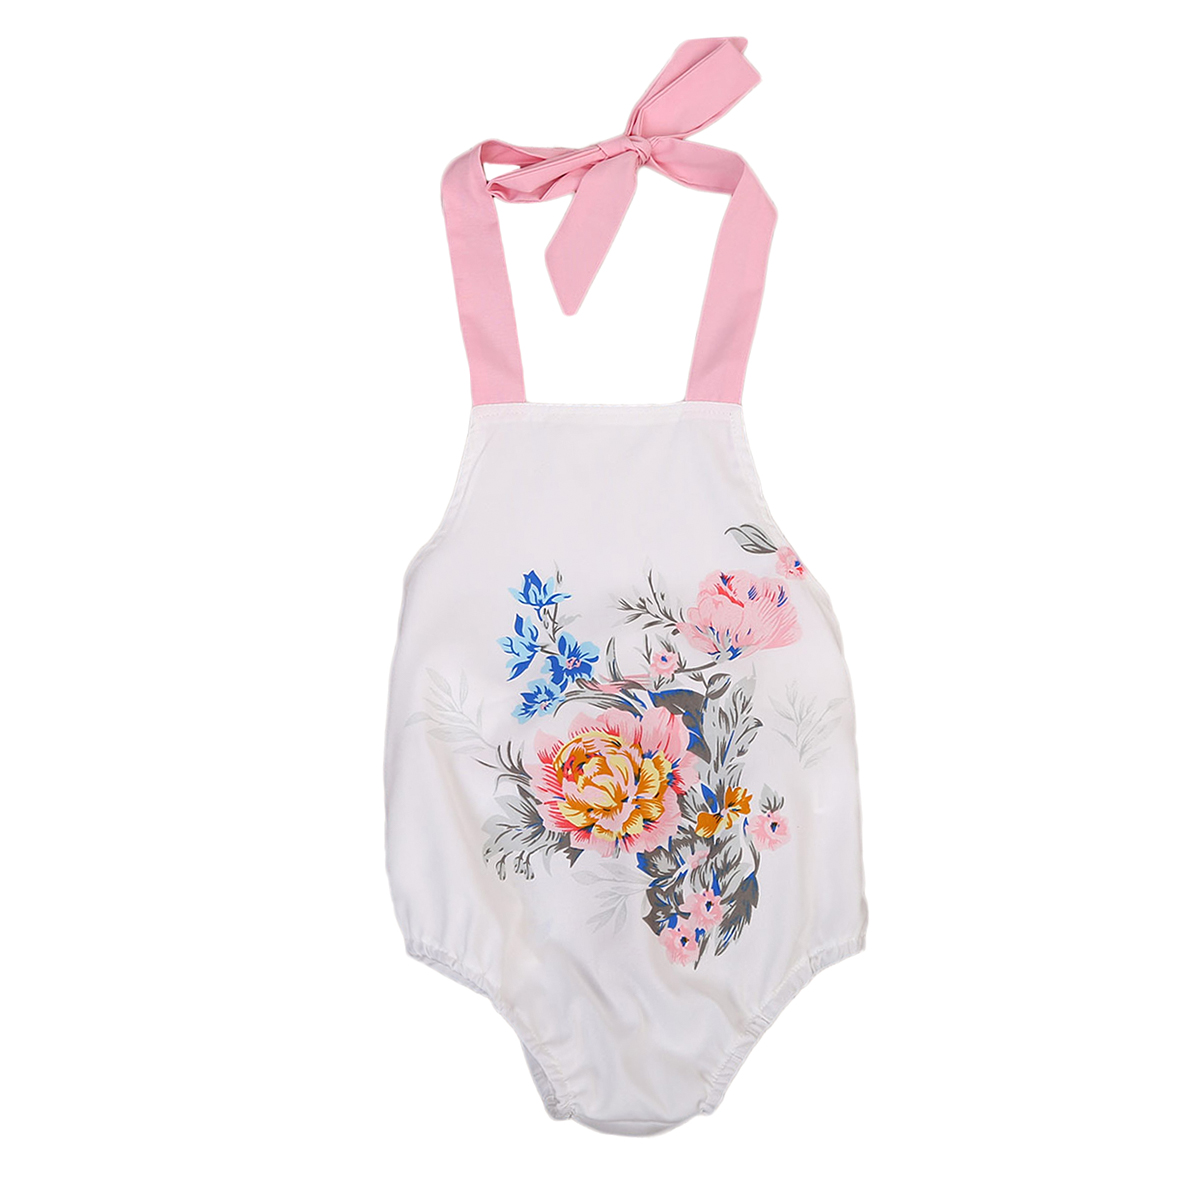 High Quality Newborn Kids Baby Girls Clothes Summer Floral Sunsuit Jumpsuit Sleeveless Romper Outfits Baby Clothing 0-18M